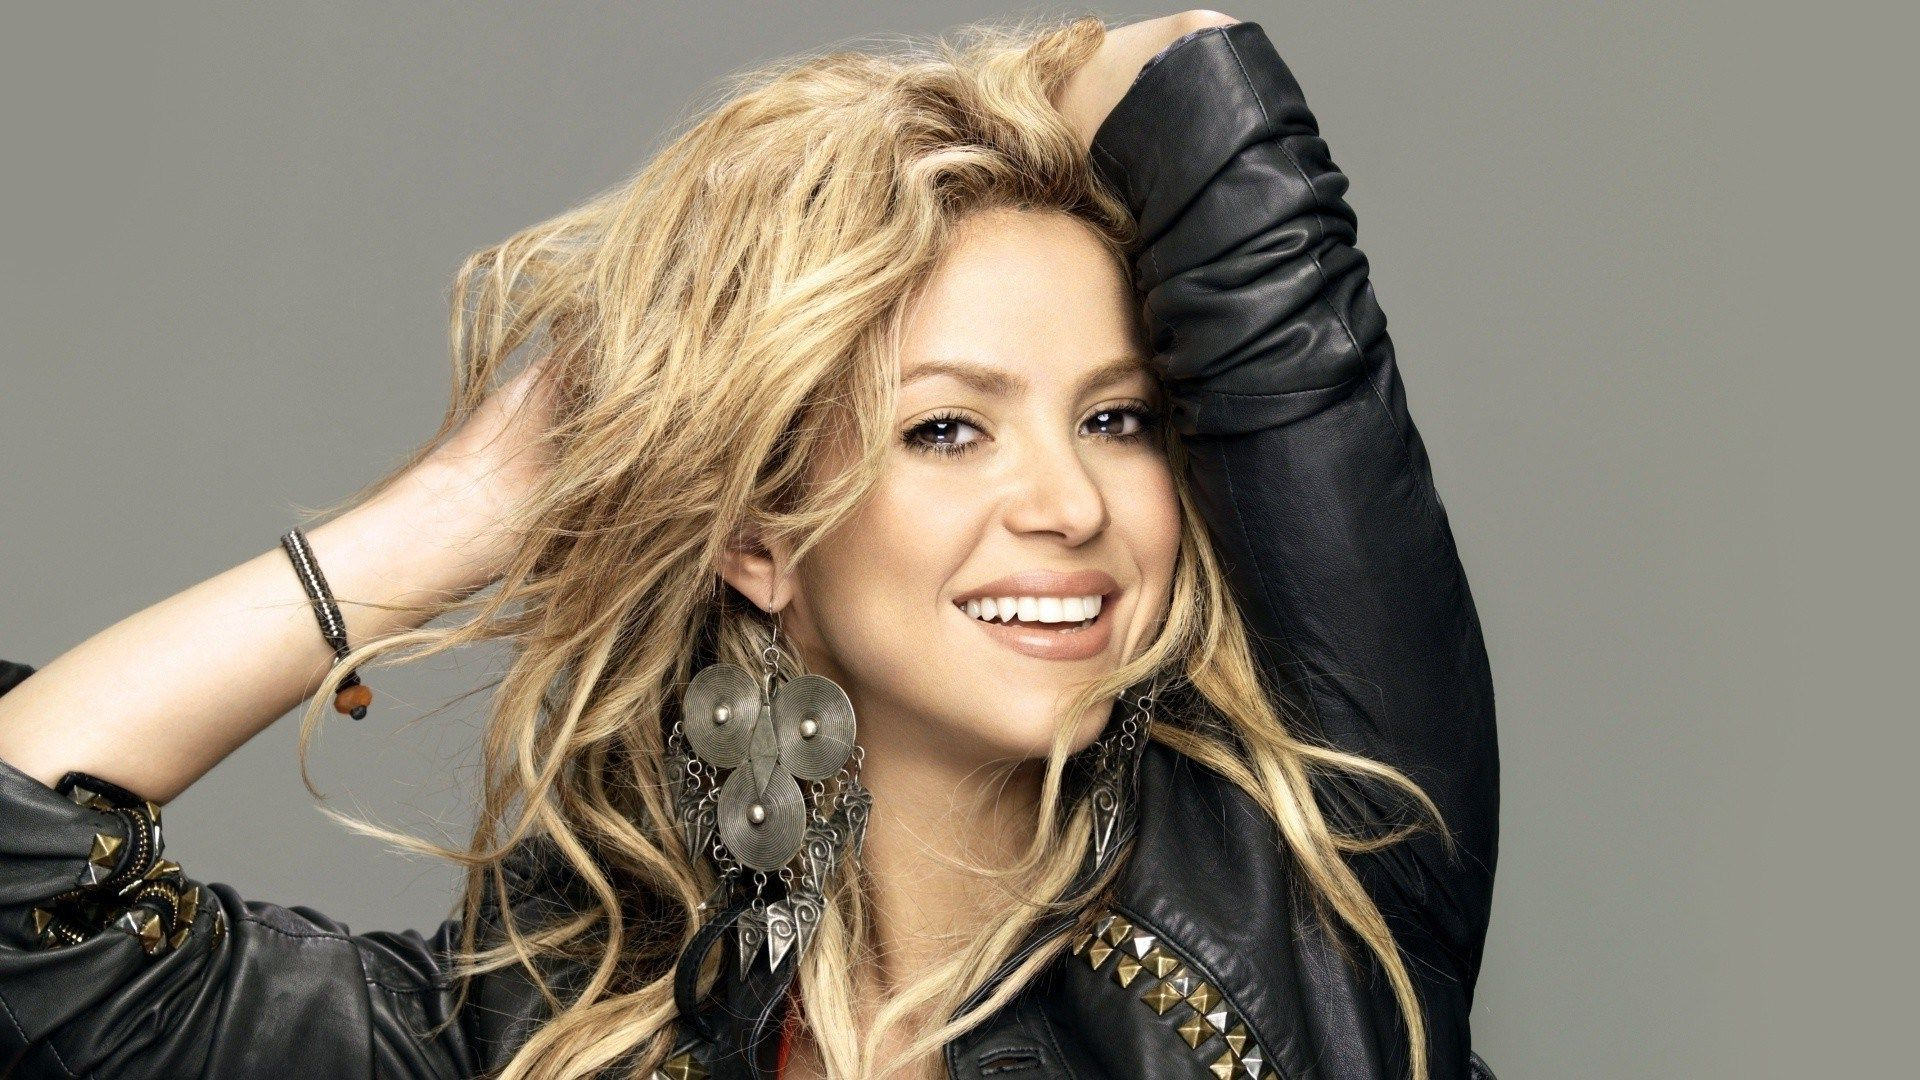 Wonderful Shakira Wallpaper